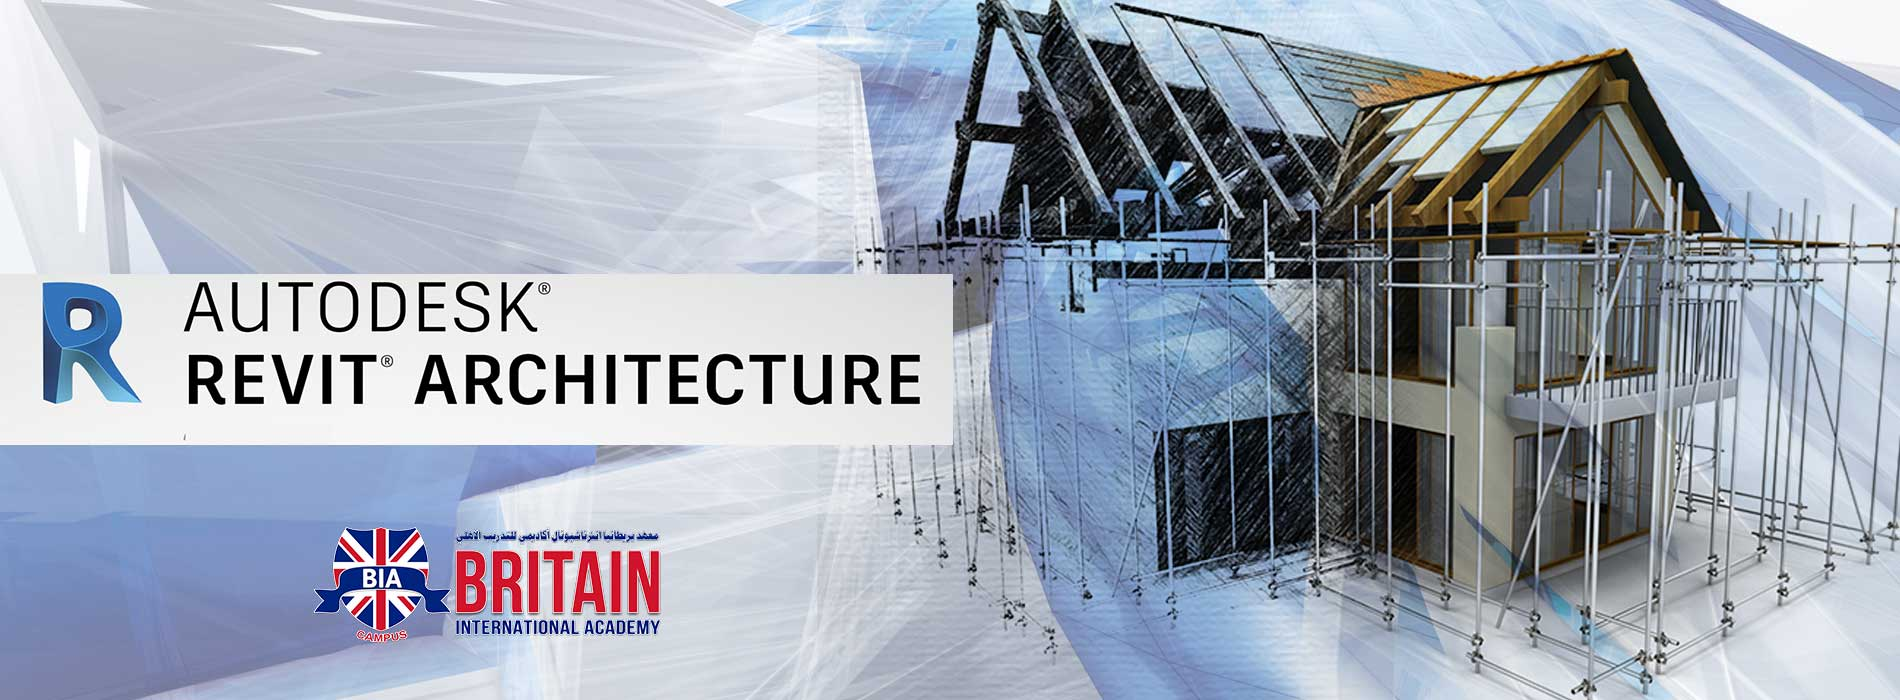 THE REVOLUTIONARY SIGNIFICANCE OF REVIT ARCHITECTURE